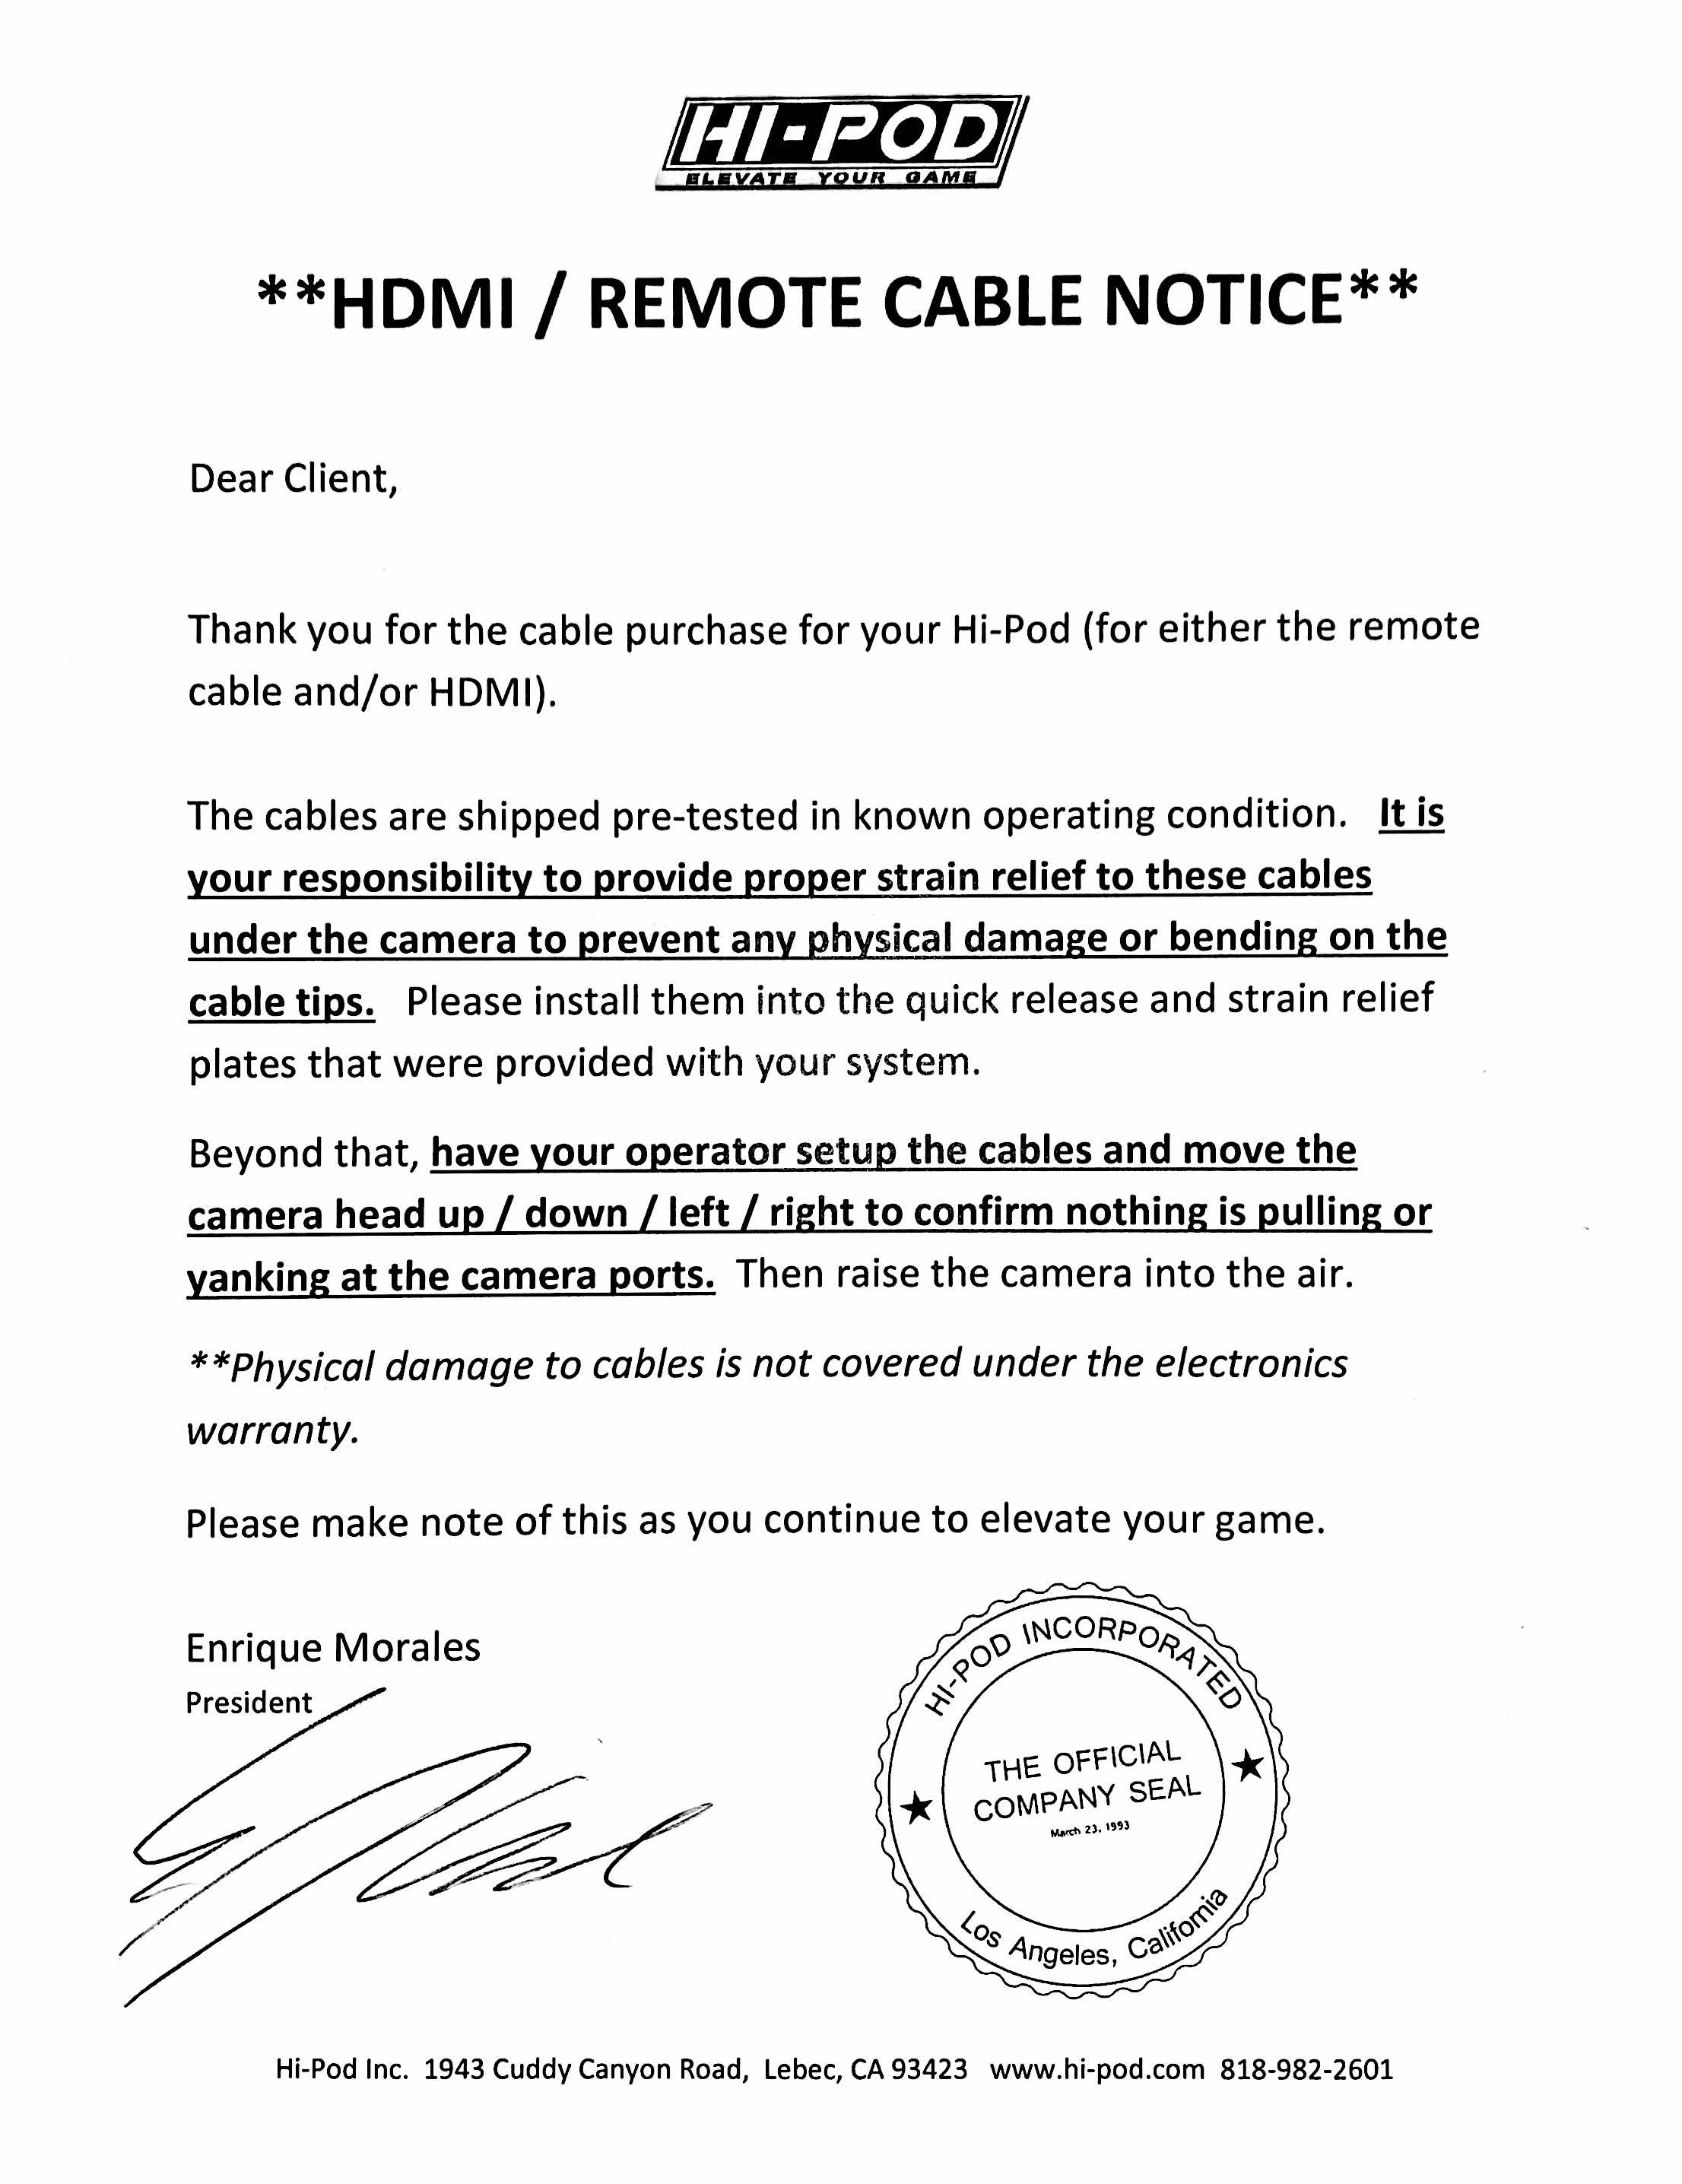 cable-notice.jpg